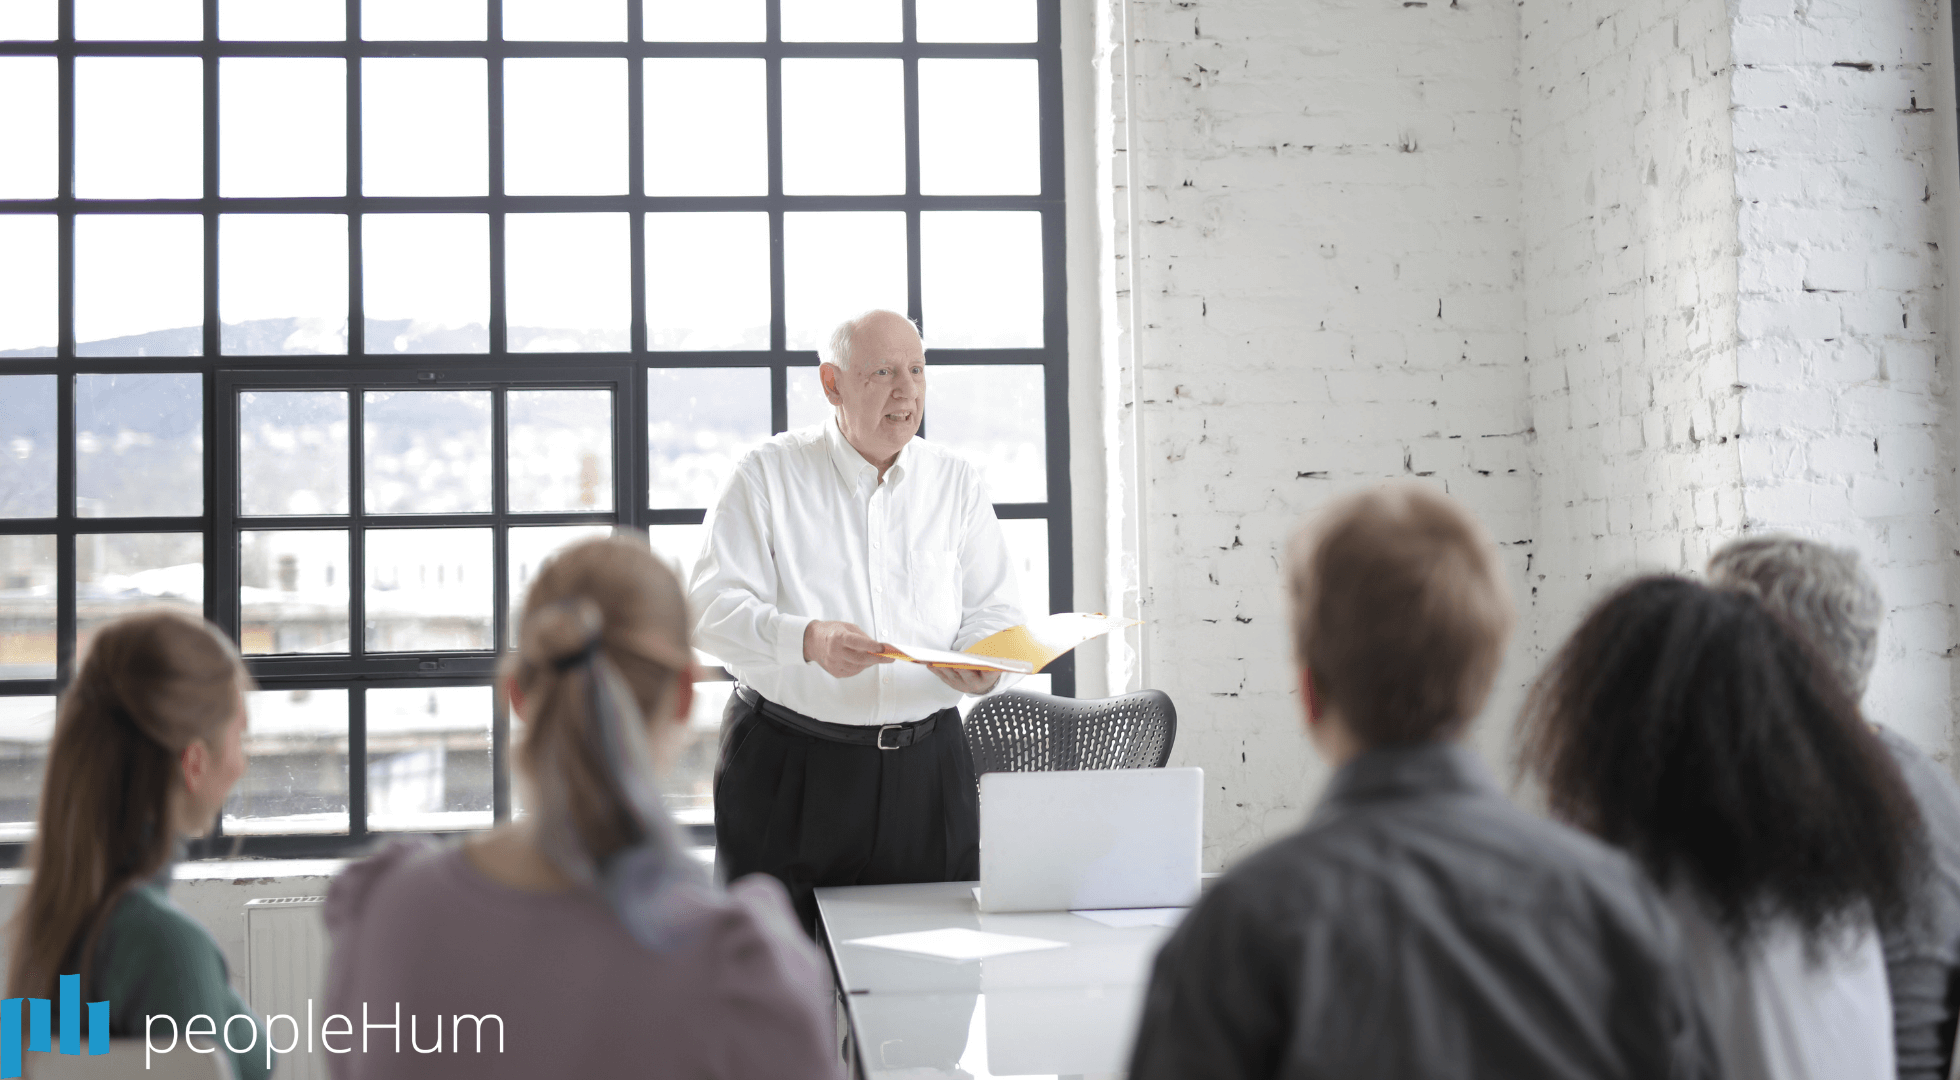 The executive coaching session as a set of work sequences